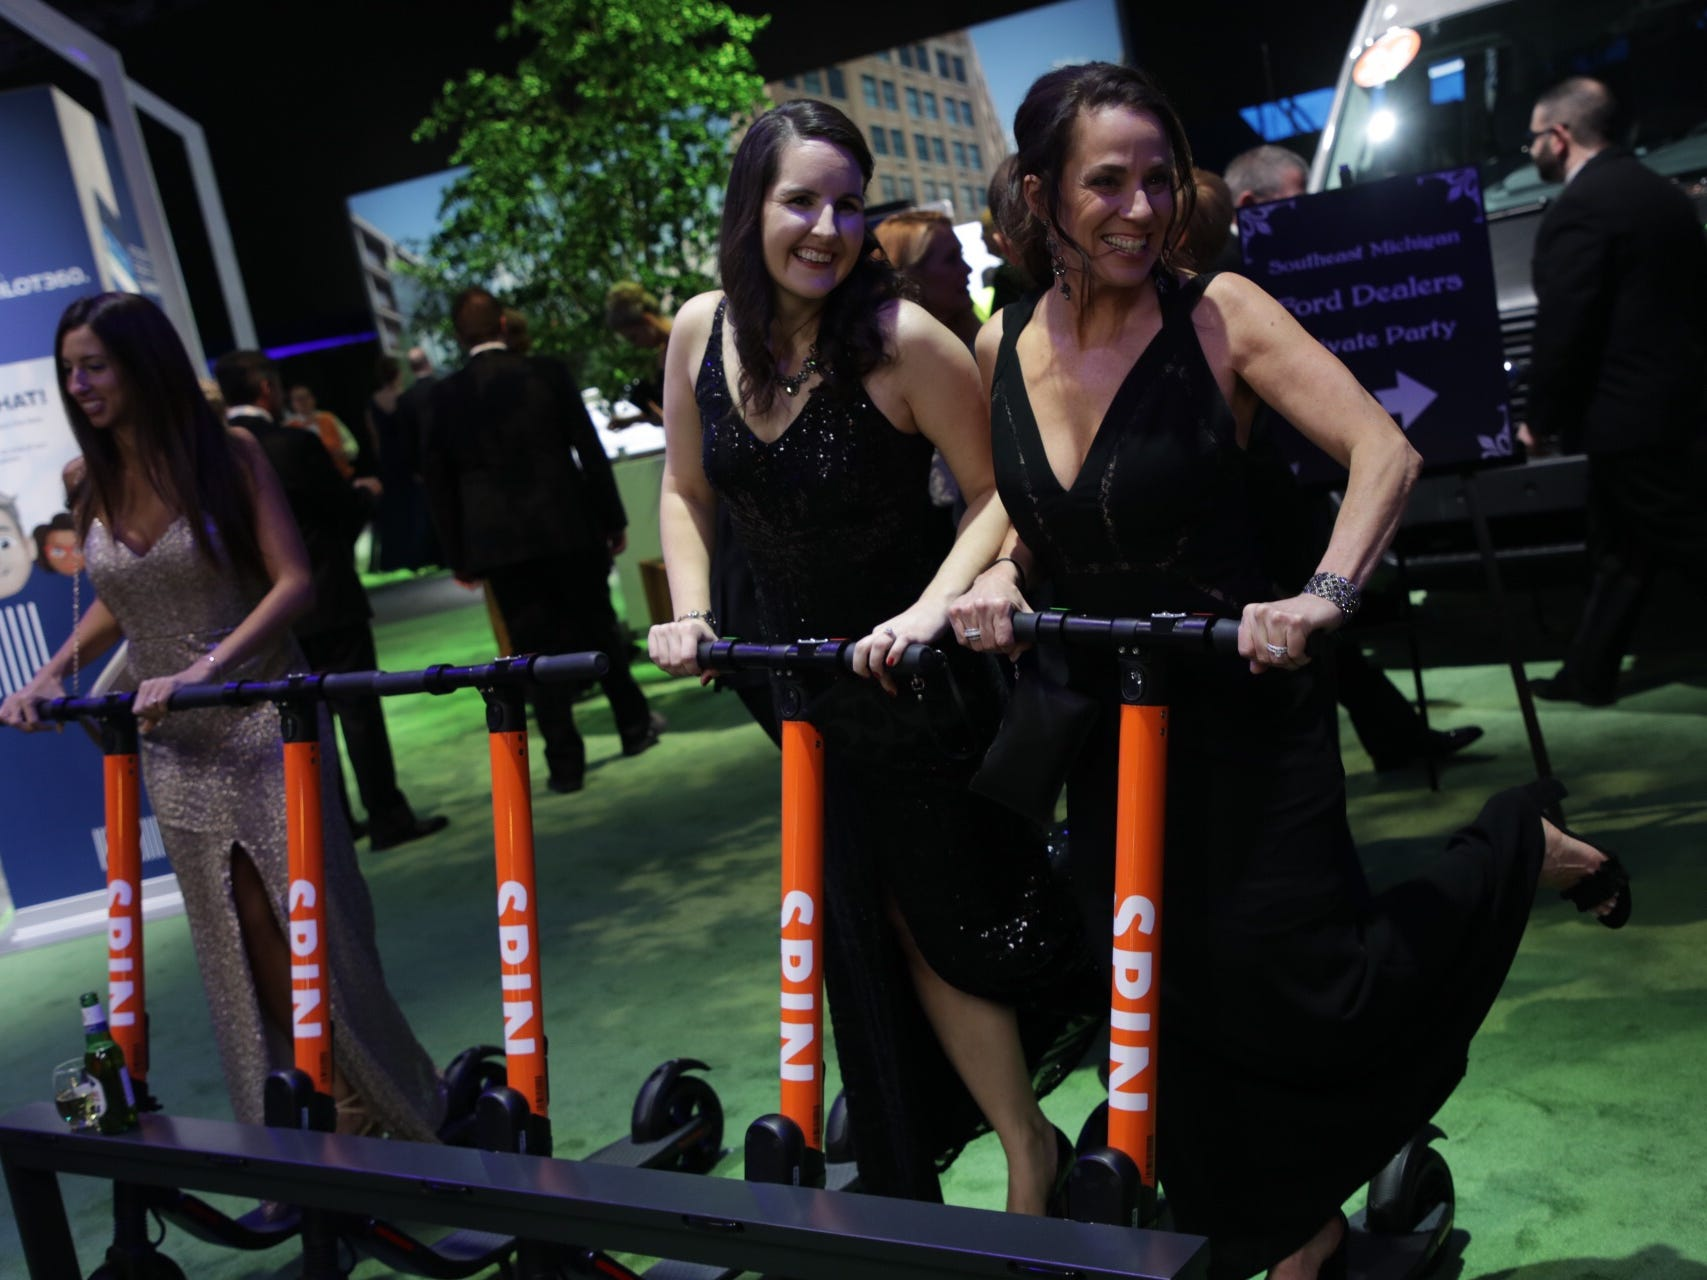 Sarah Eudier, left and Lari Schroll both of West Bloomfield try Spin Scooters during the 2019 North American International Auto Show Charity Preview at Cobo Center in Detroit on Friday, January 18, 2019.